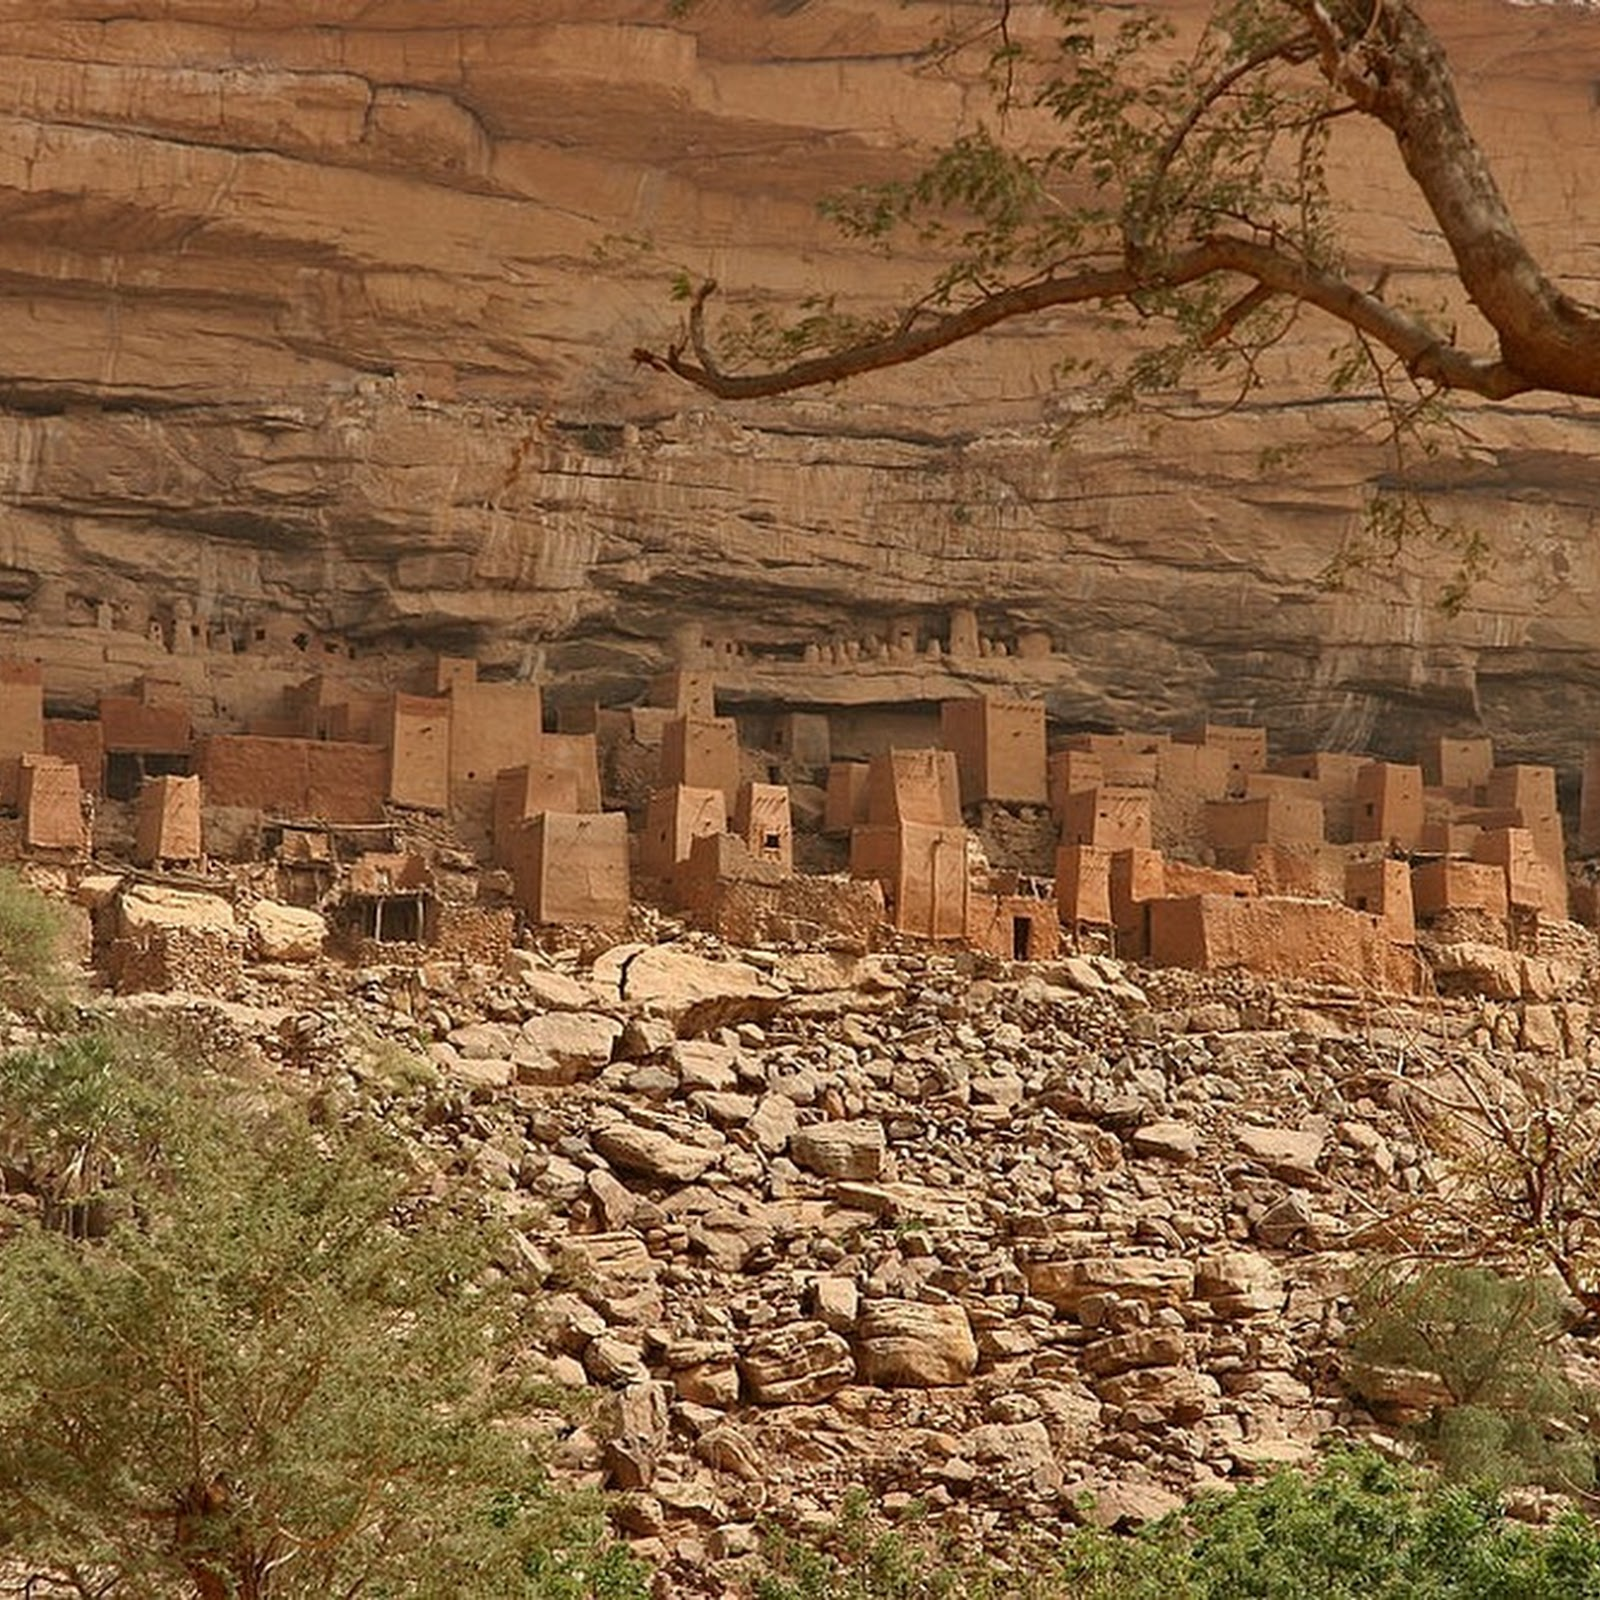 The Dogon Villages of Bandiagara Escarpment